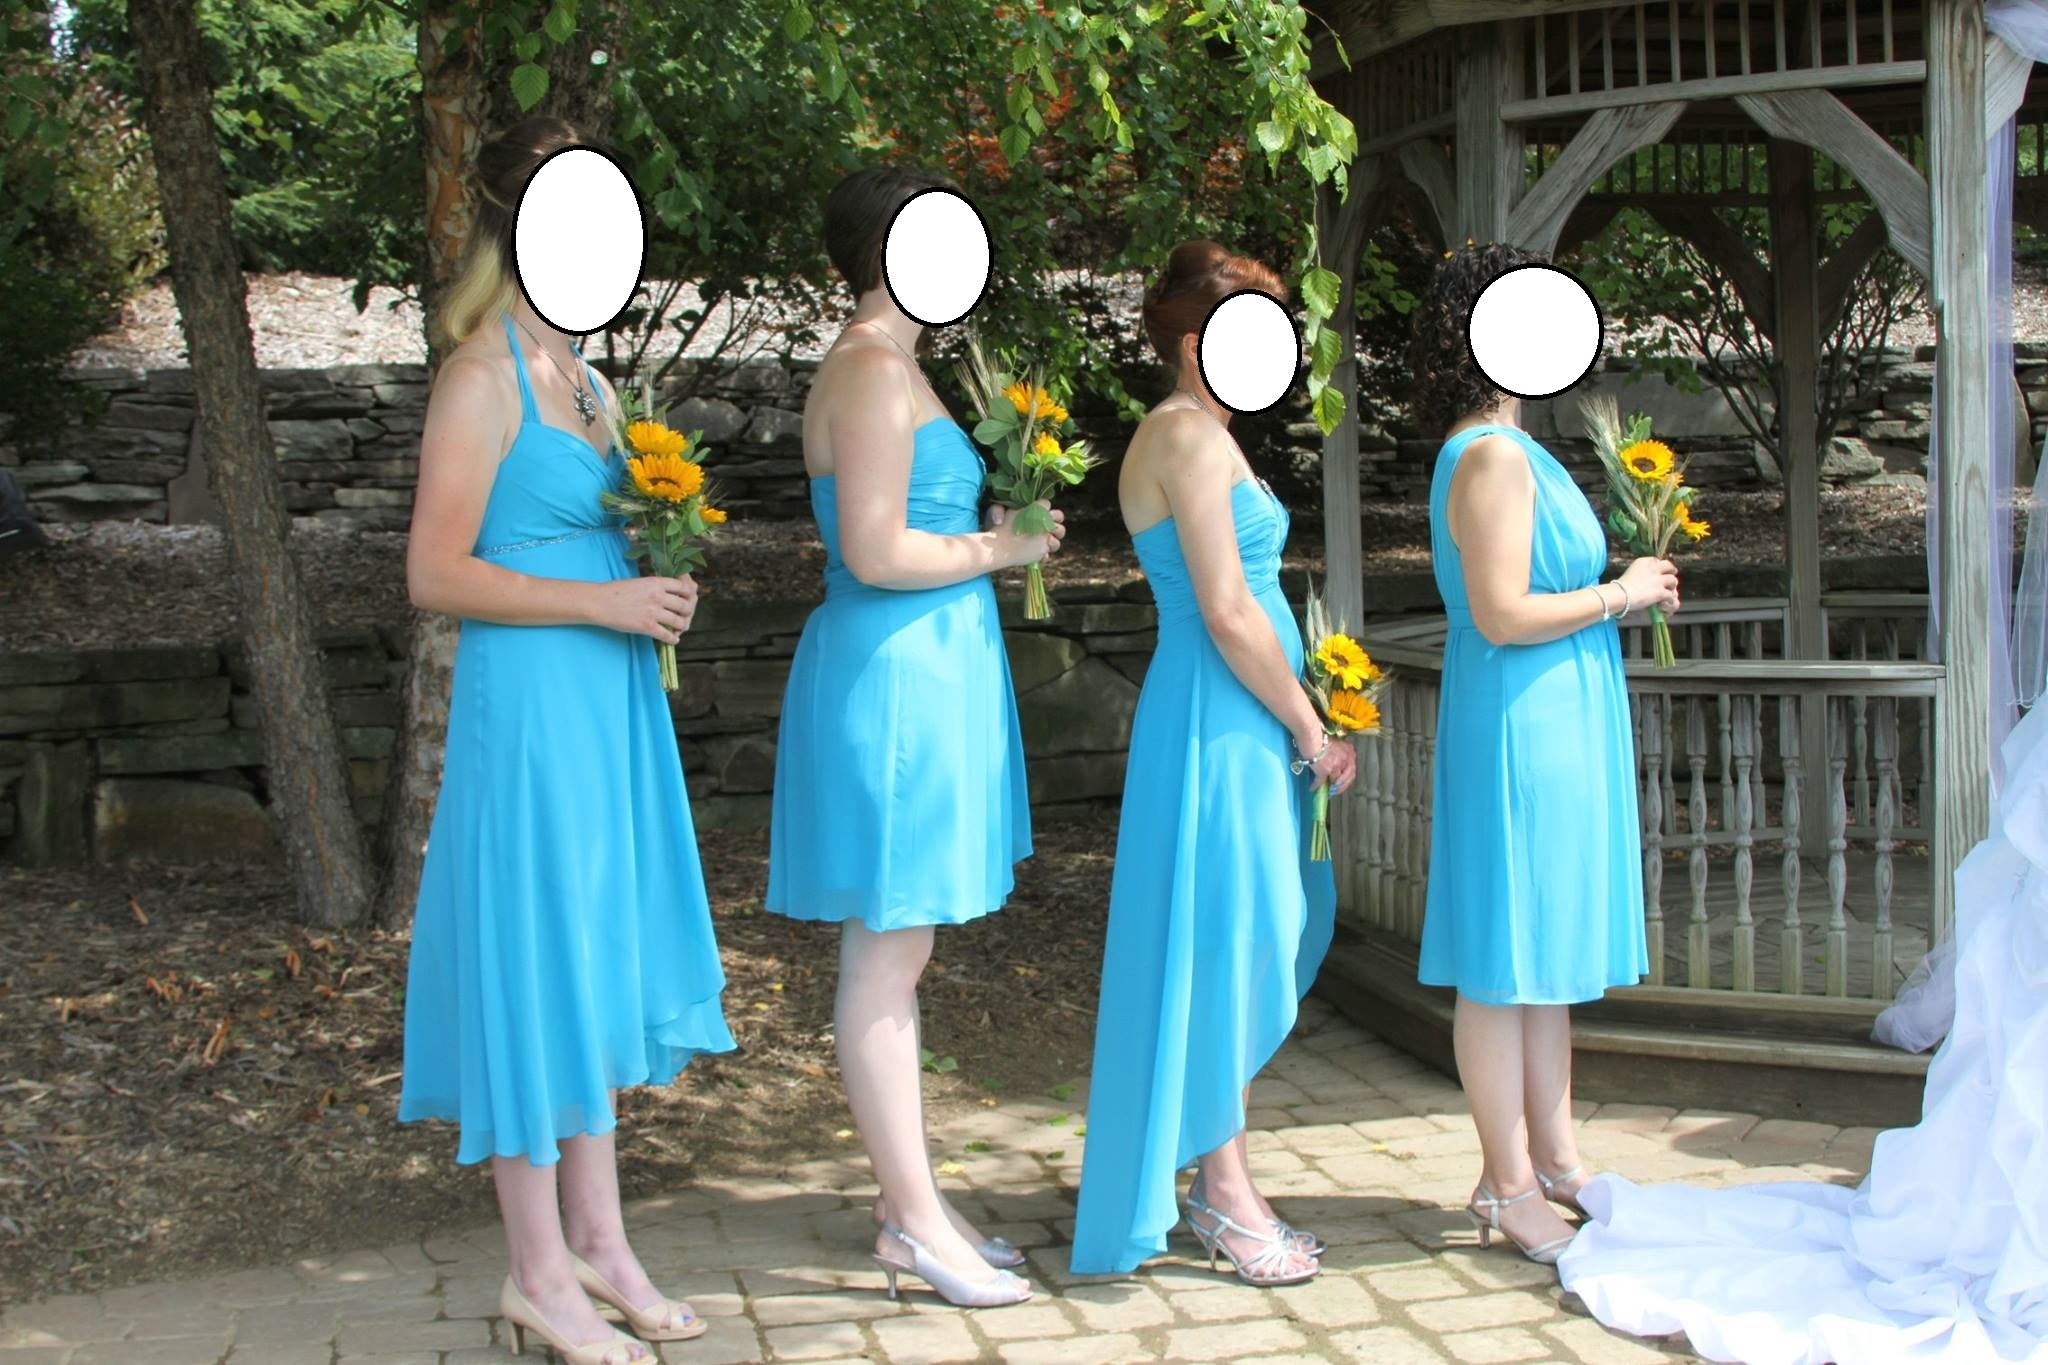 Bridesmaids Dresses - Let Them Pick Their Own? — The Knot